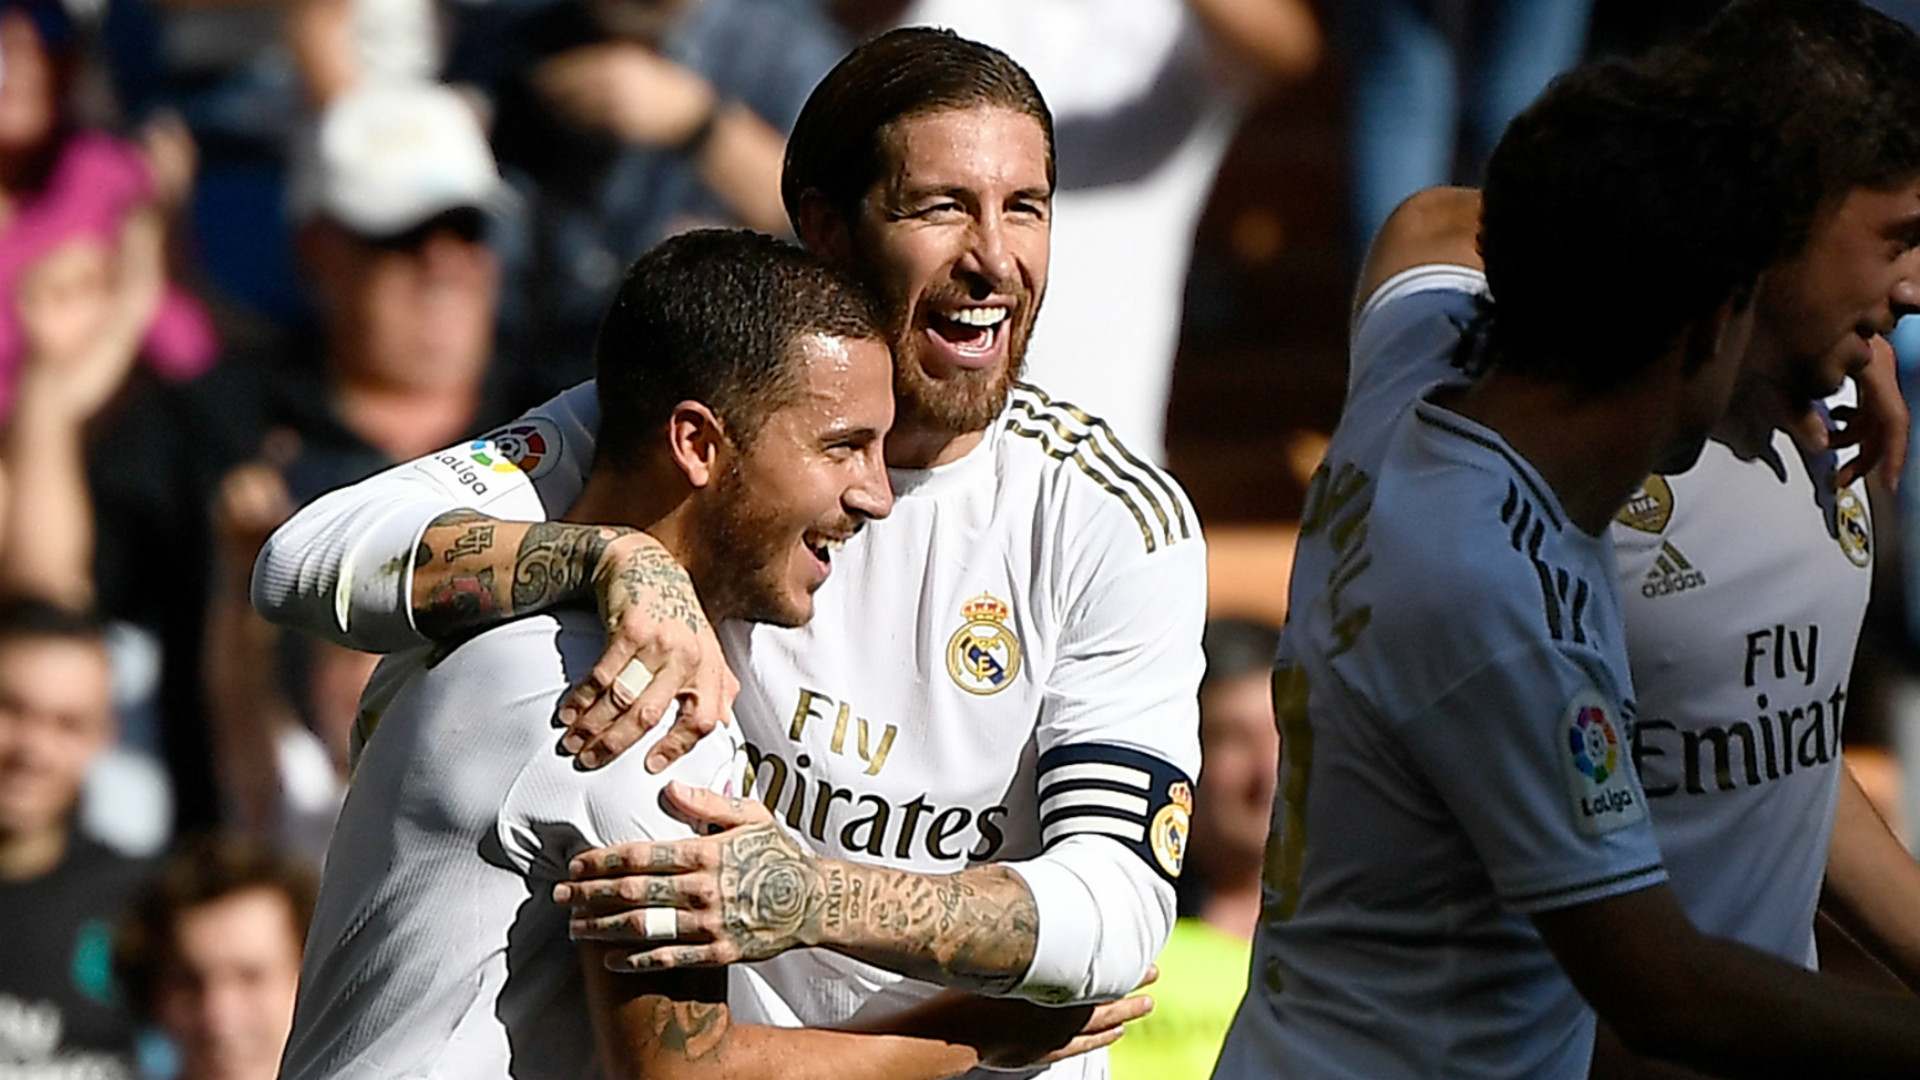 'He knows what us players need' - Hazard relishing chance to learn from 'idol' Zidane at Real Madrid